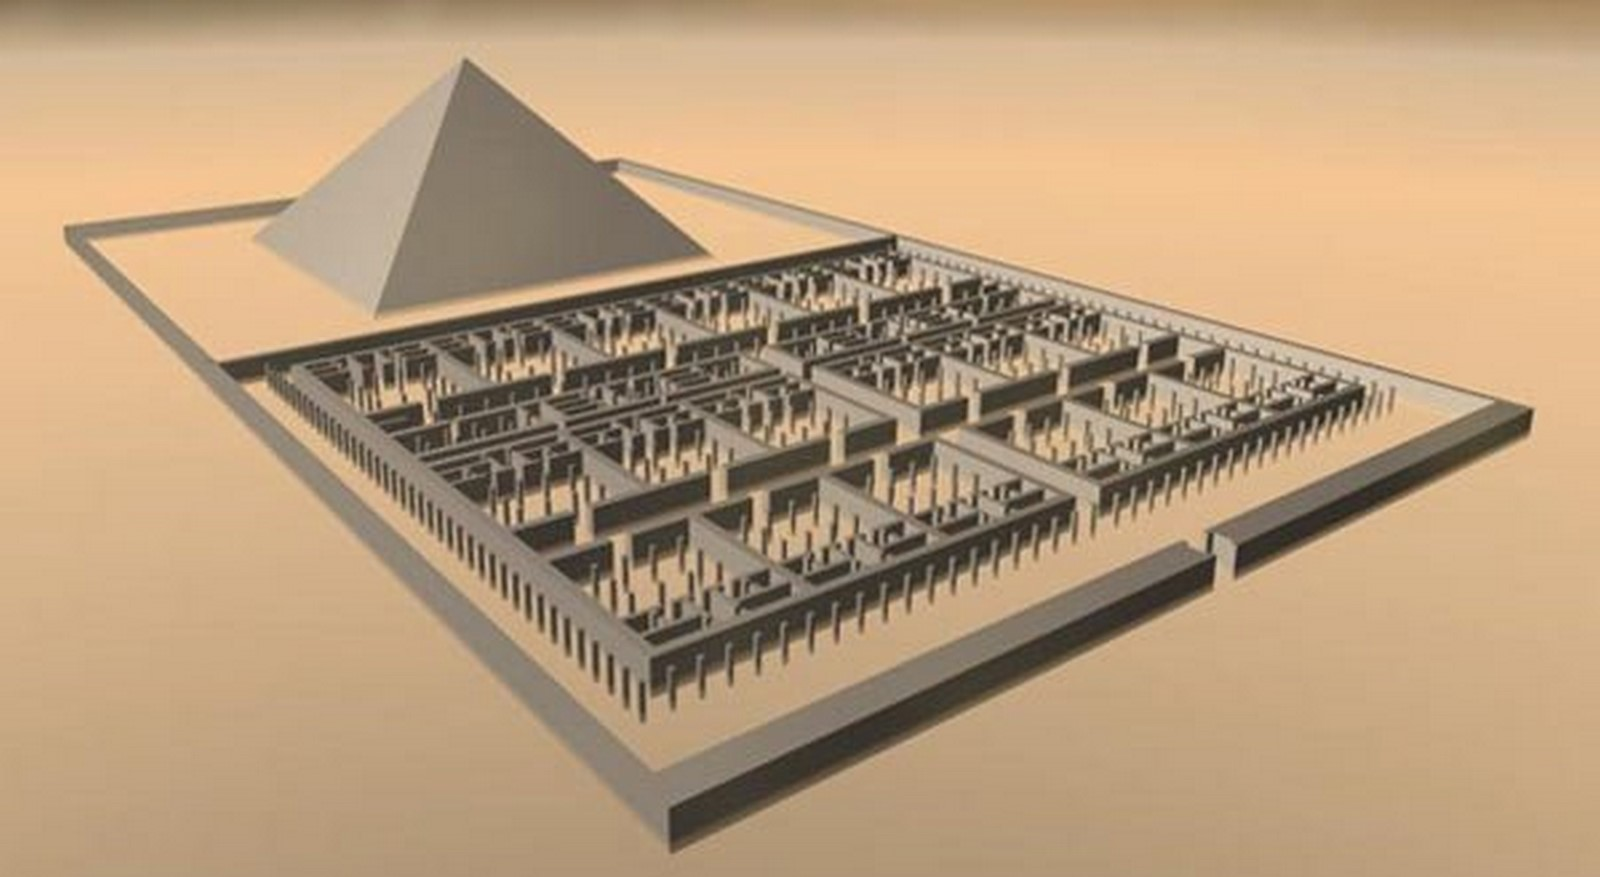 10 Things you did not know about Ancient Egypt Architecture - Sheet9